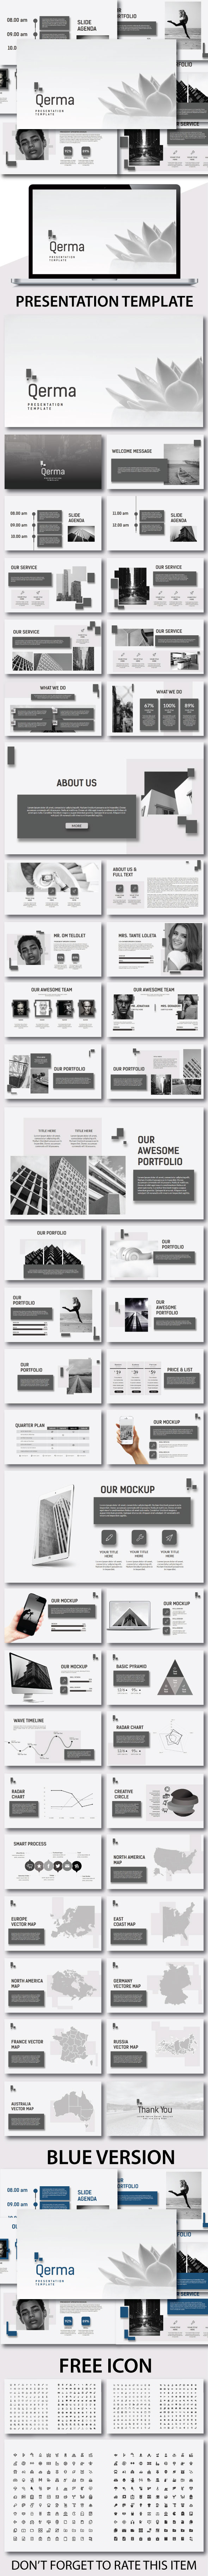 Qerma Powerpoint Template - PowerPoint Templates Presentation Templates